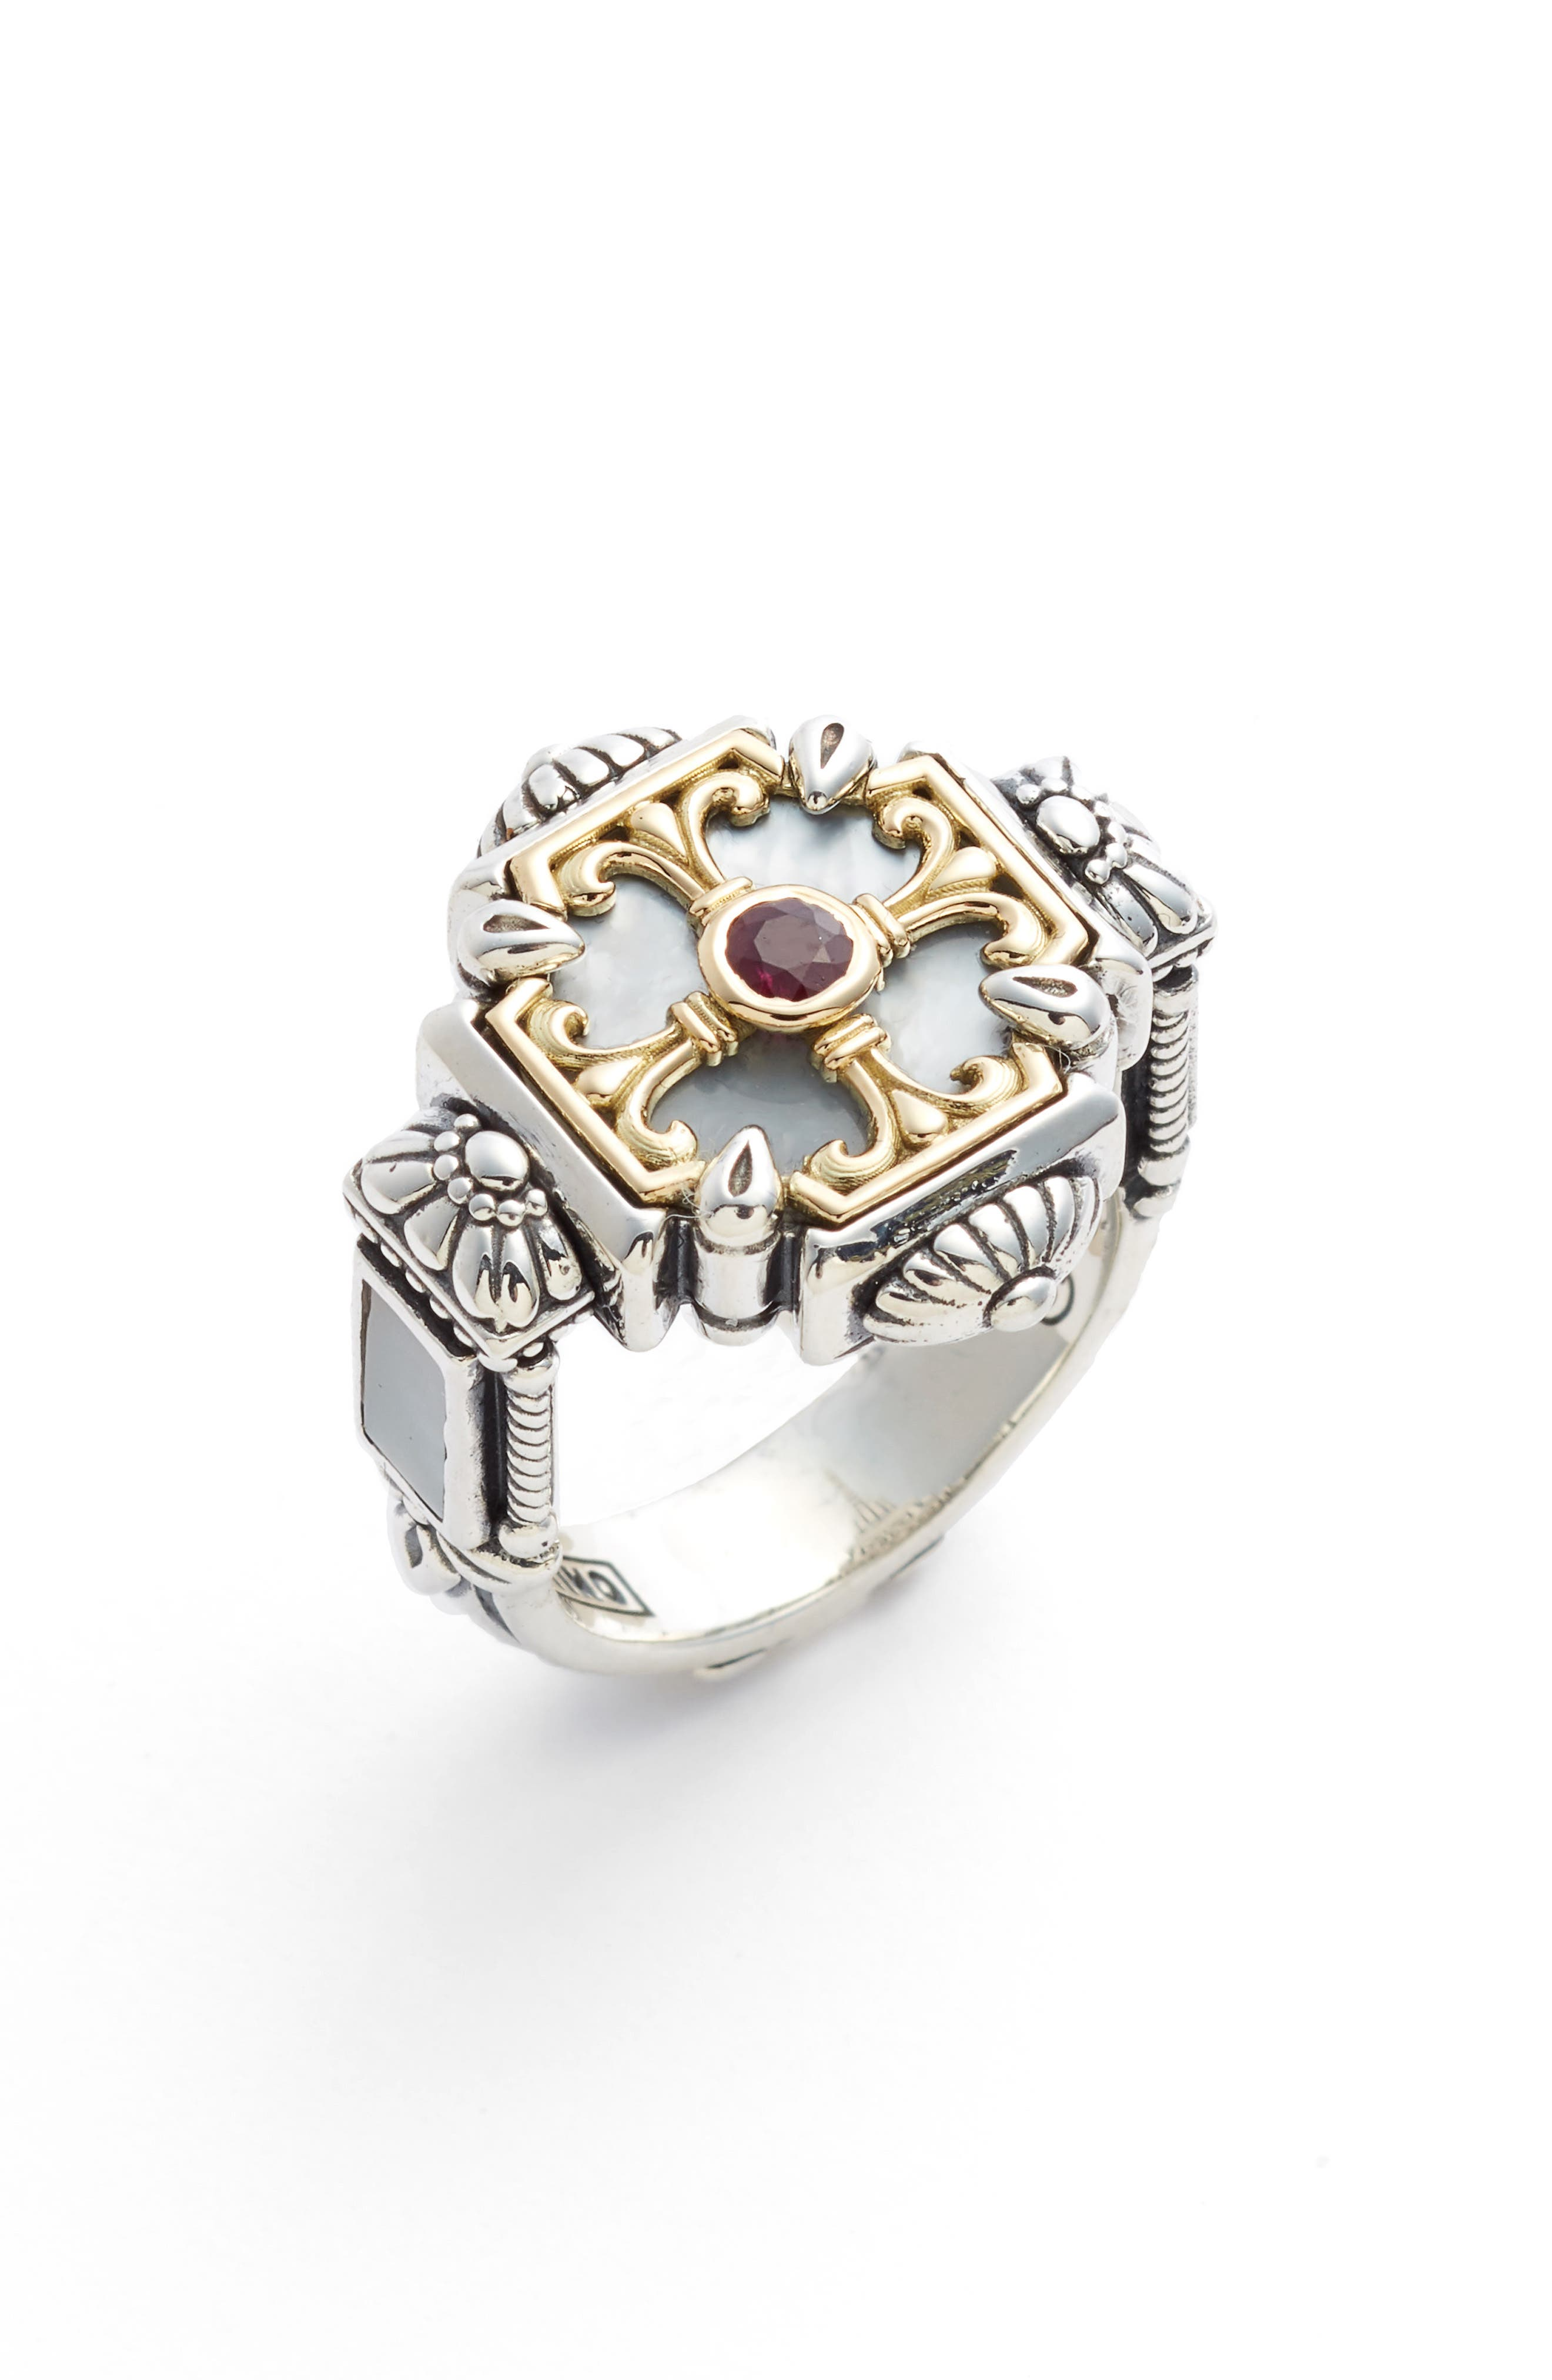 Sterling Silver & Ruby Ring,                             Main thumbnail 1, color,                             Silver/ Gold/ White